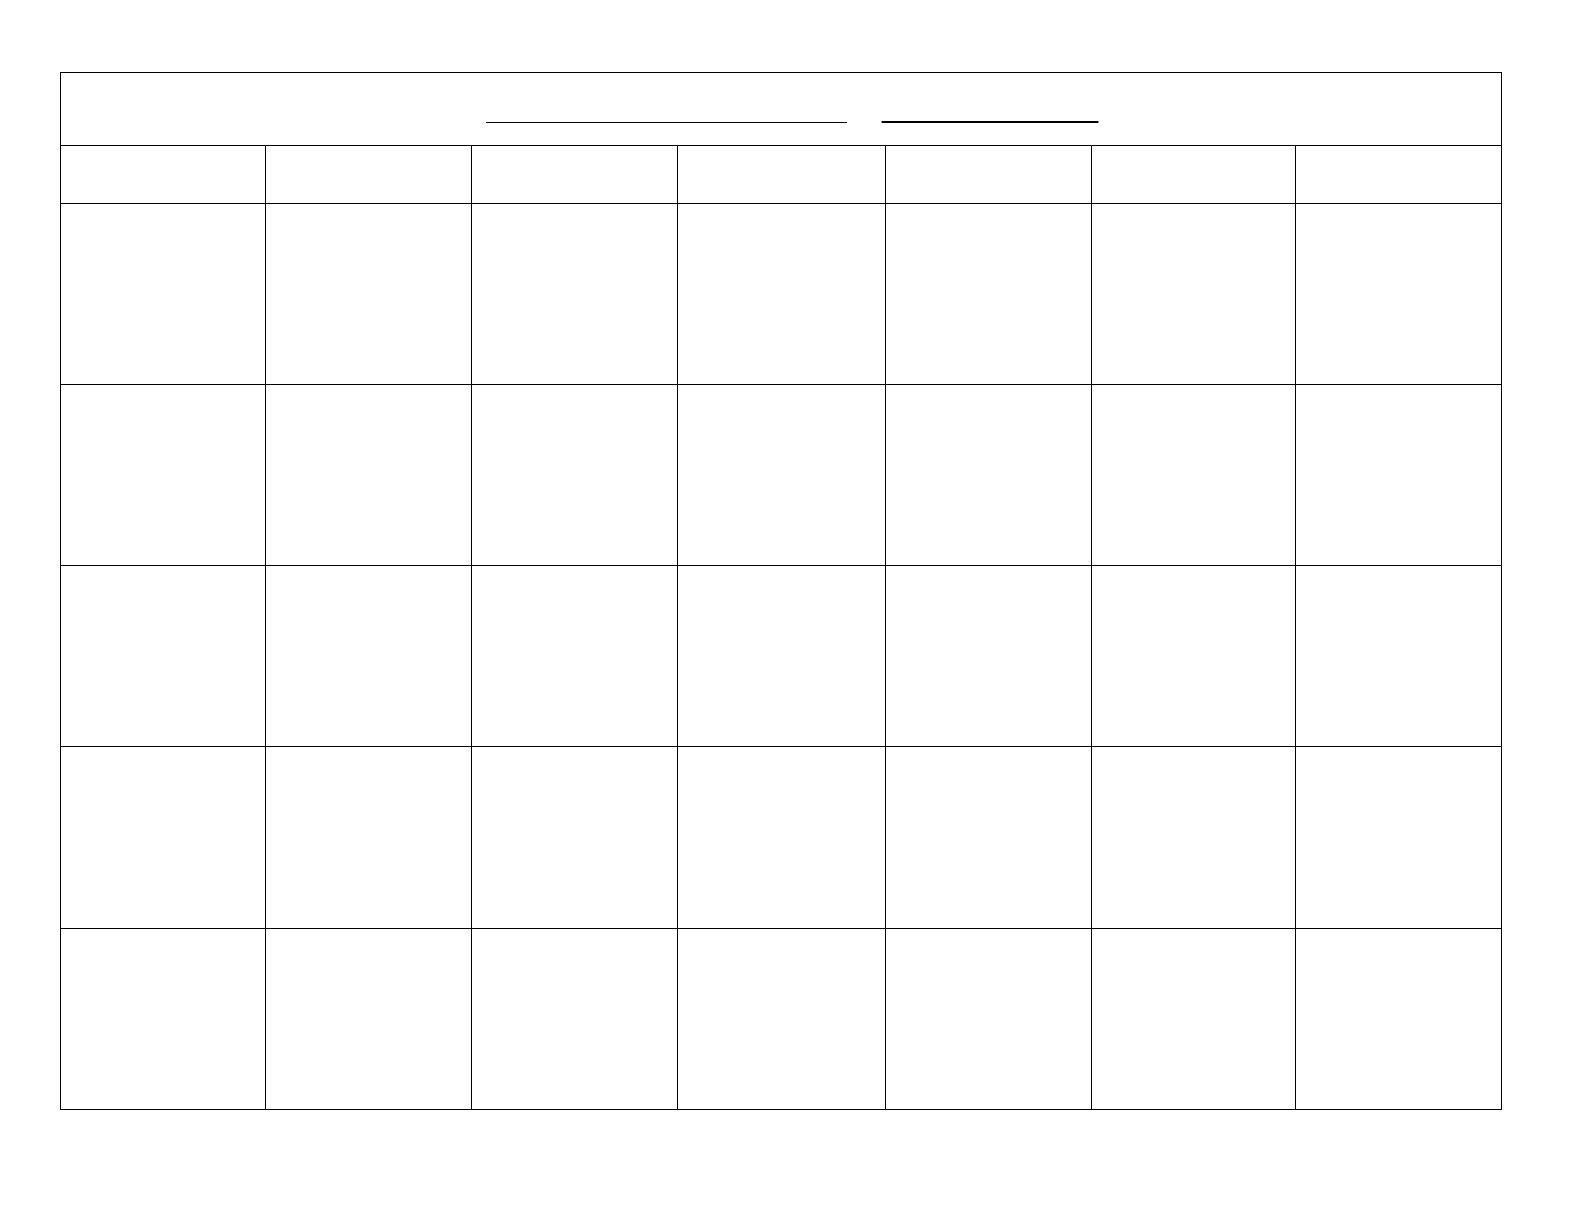 Blank Calendar Template Free Download within Monday-Friday Calendar Template